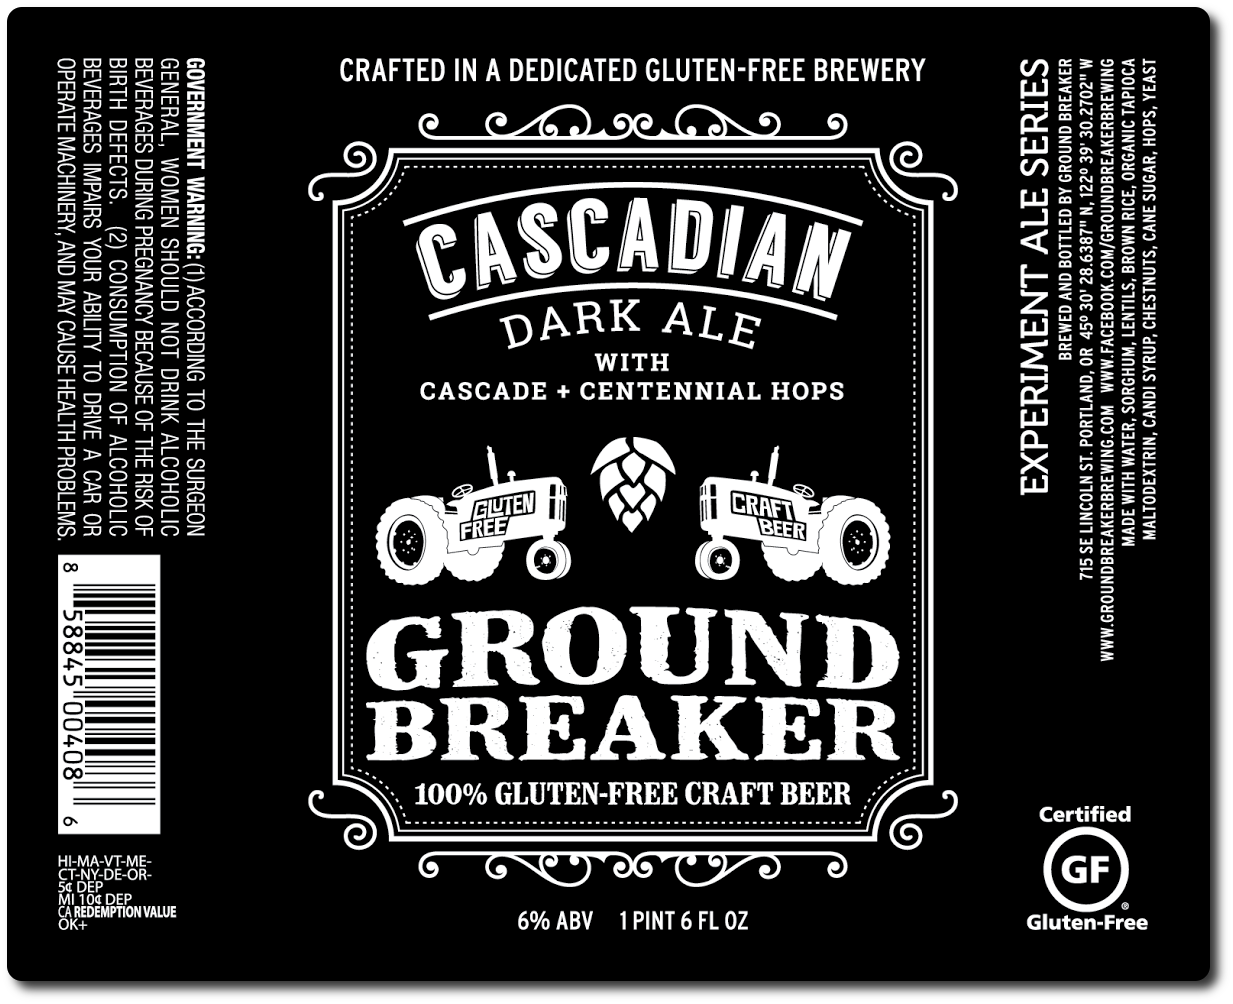 ground-breaker-brewing-cascadian-dark-ale-cda-label